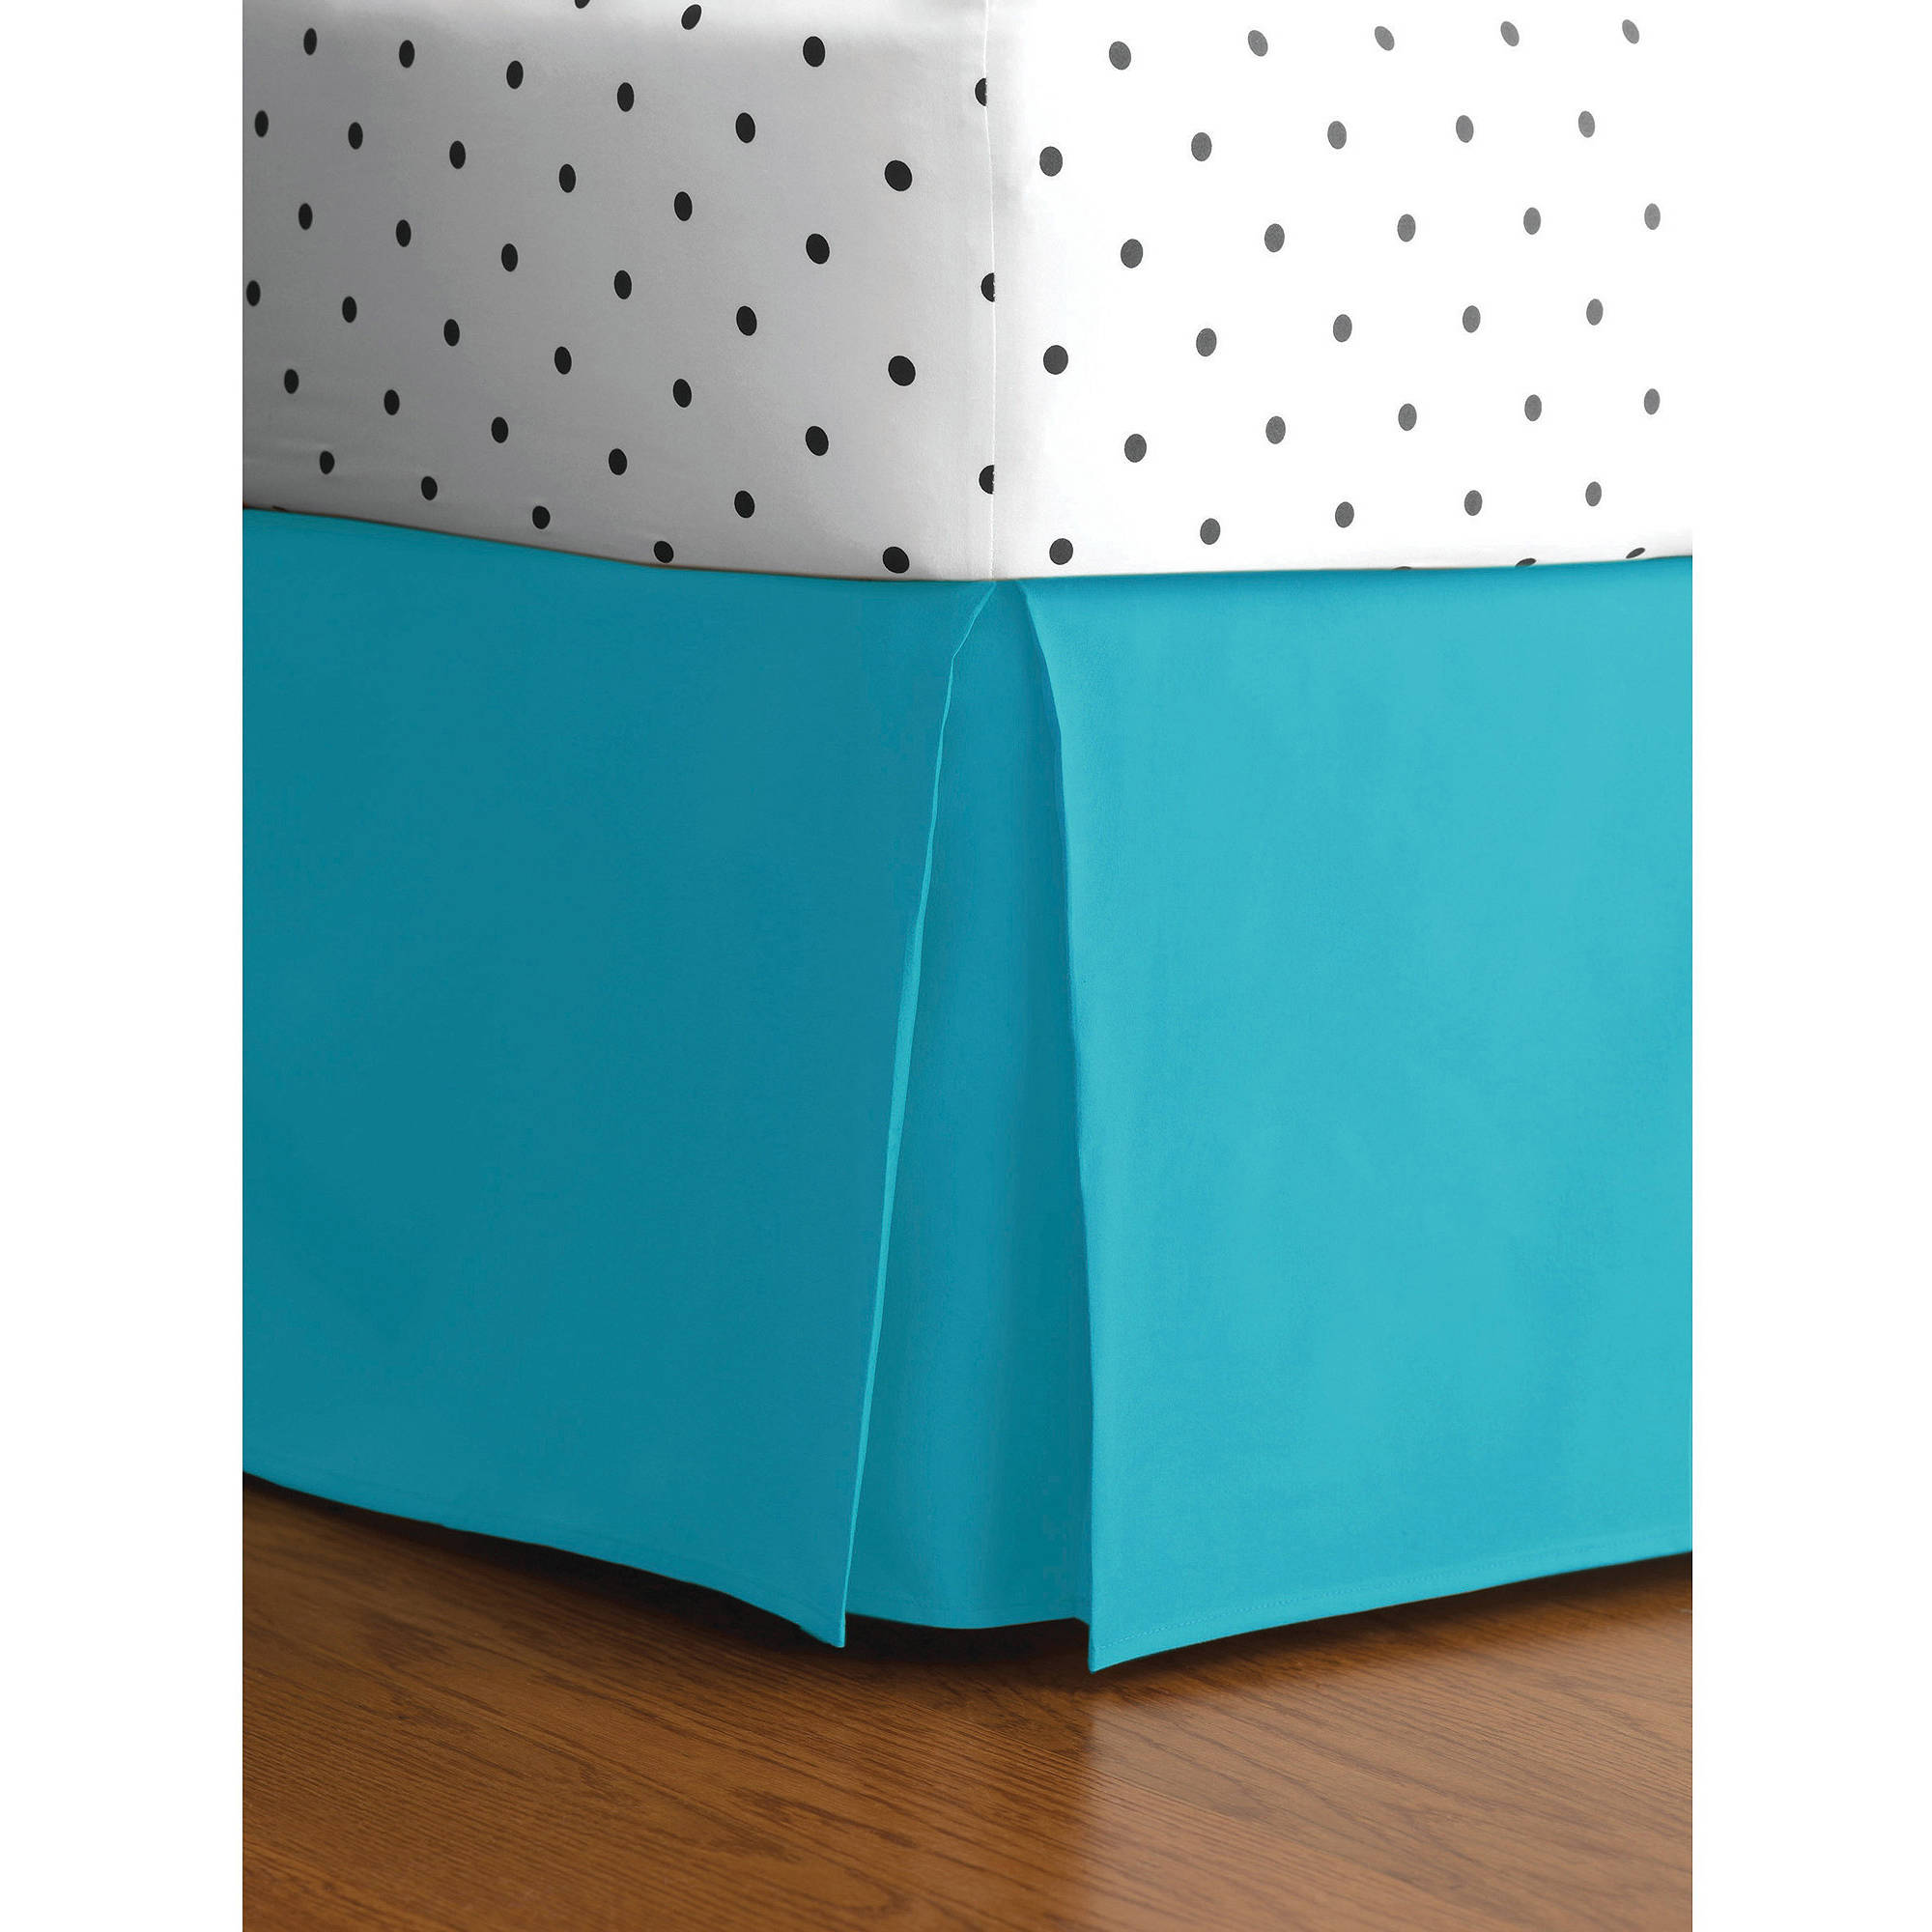 Your Zone Microfiber Solid Bed Skirt, 1 Each